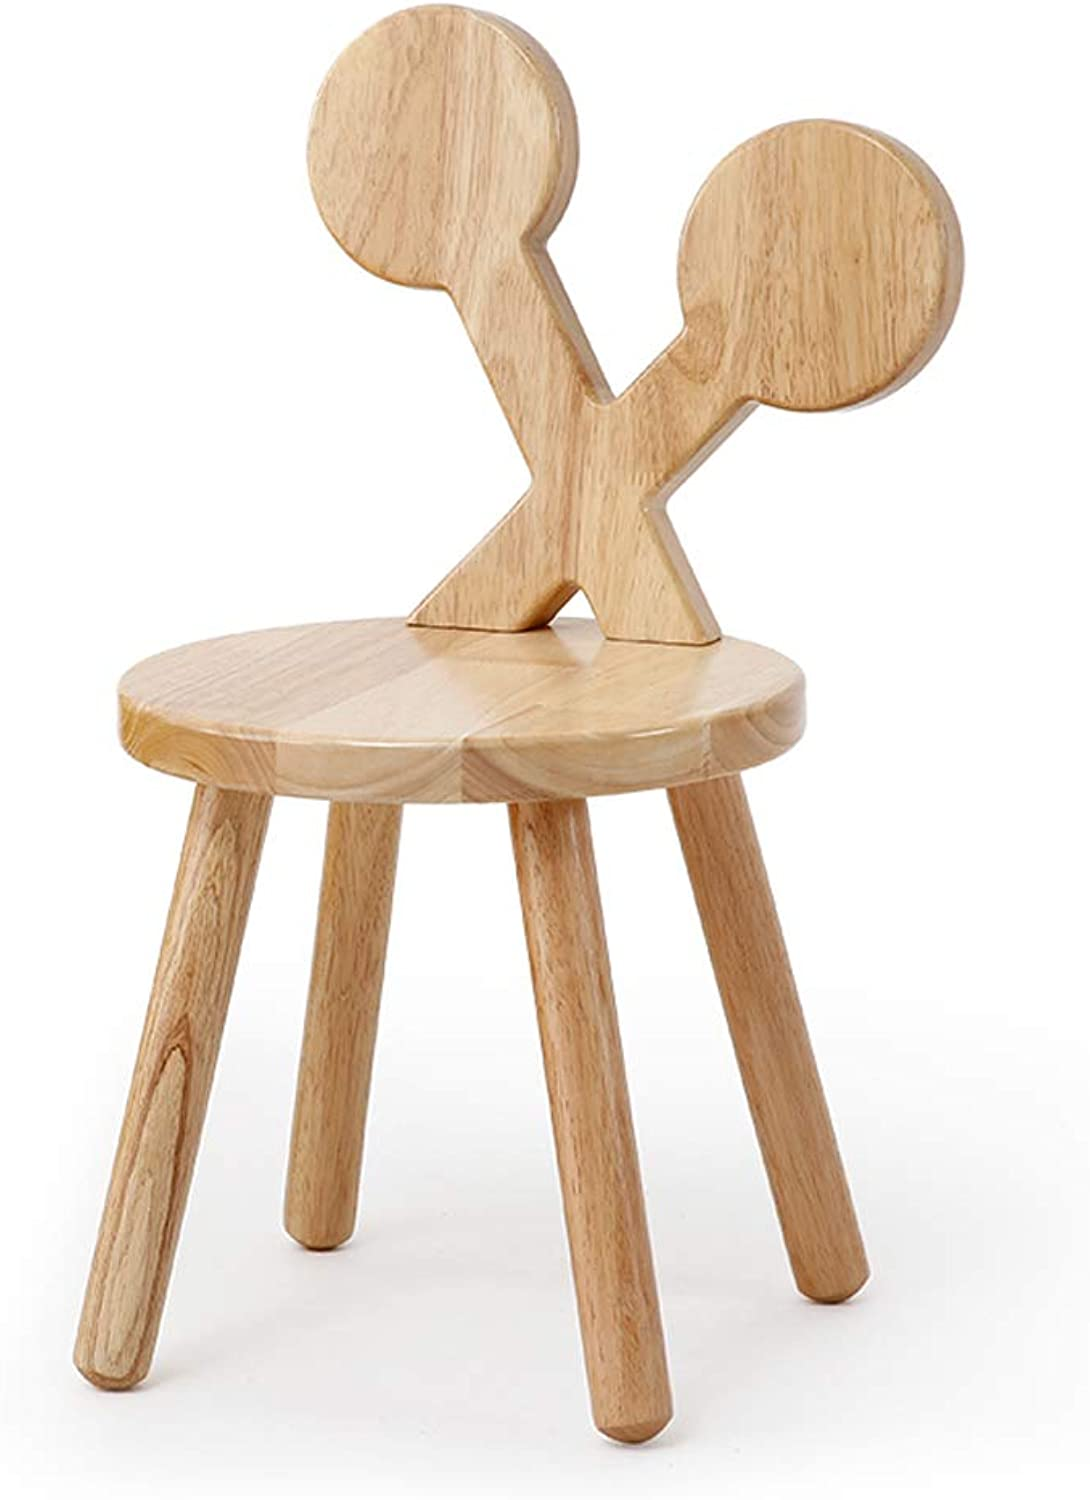 CJH Solid Wood Back Chair Solid Wood Small Bench Home Cartoon Stool Change shoes Bench Baby Chair Stool